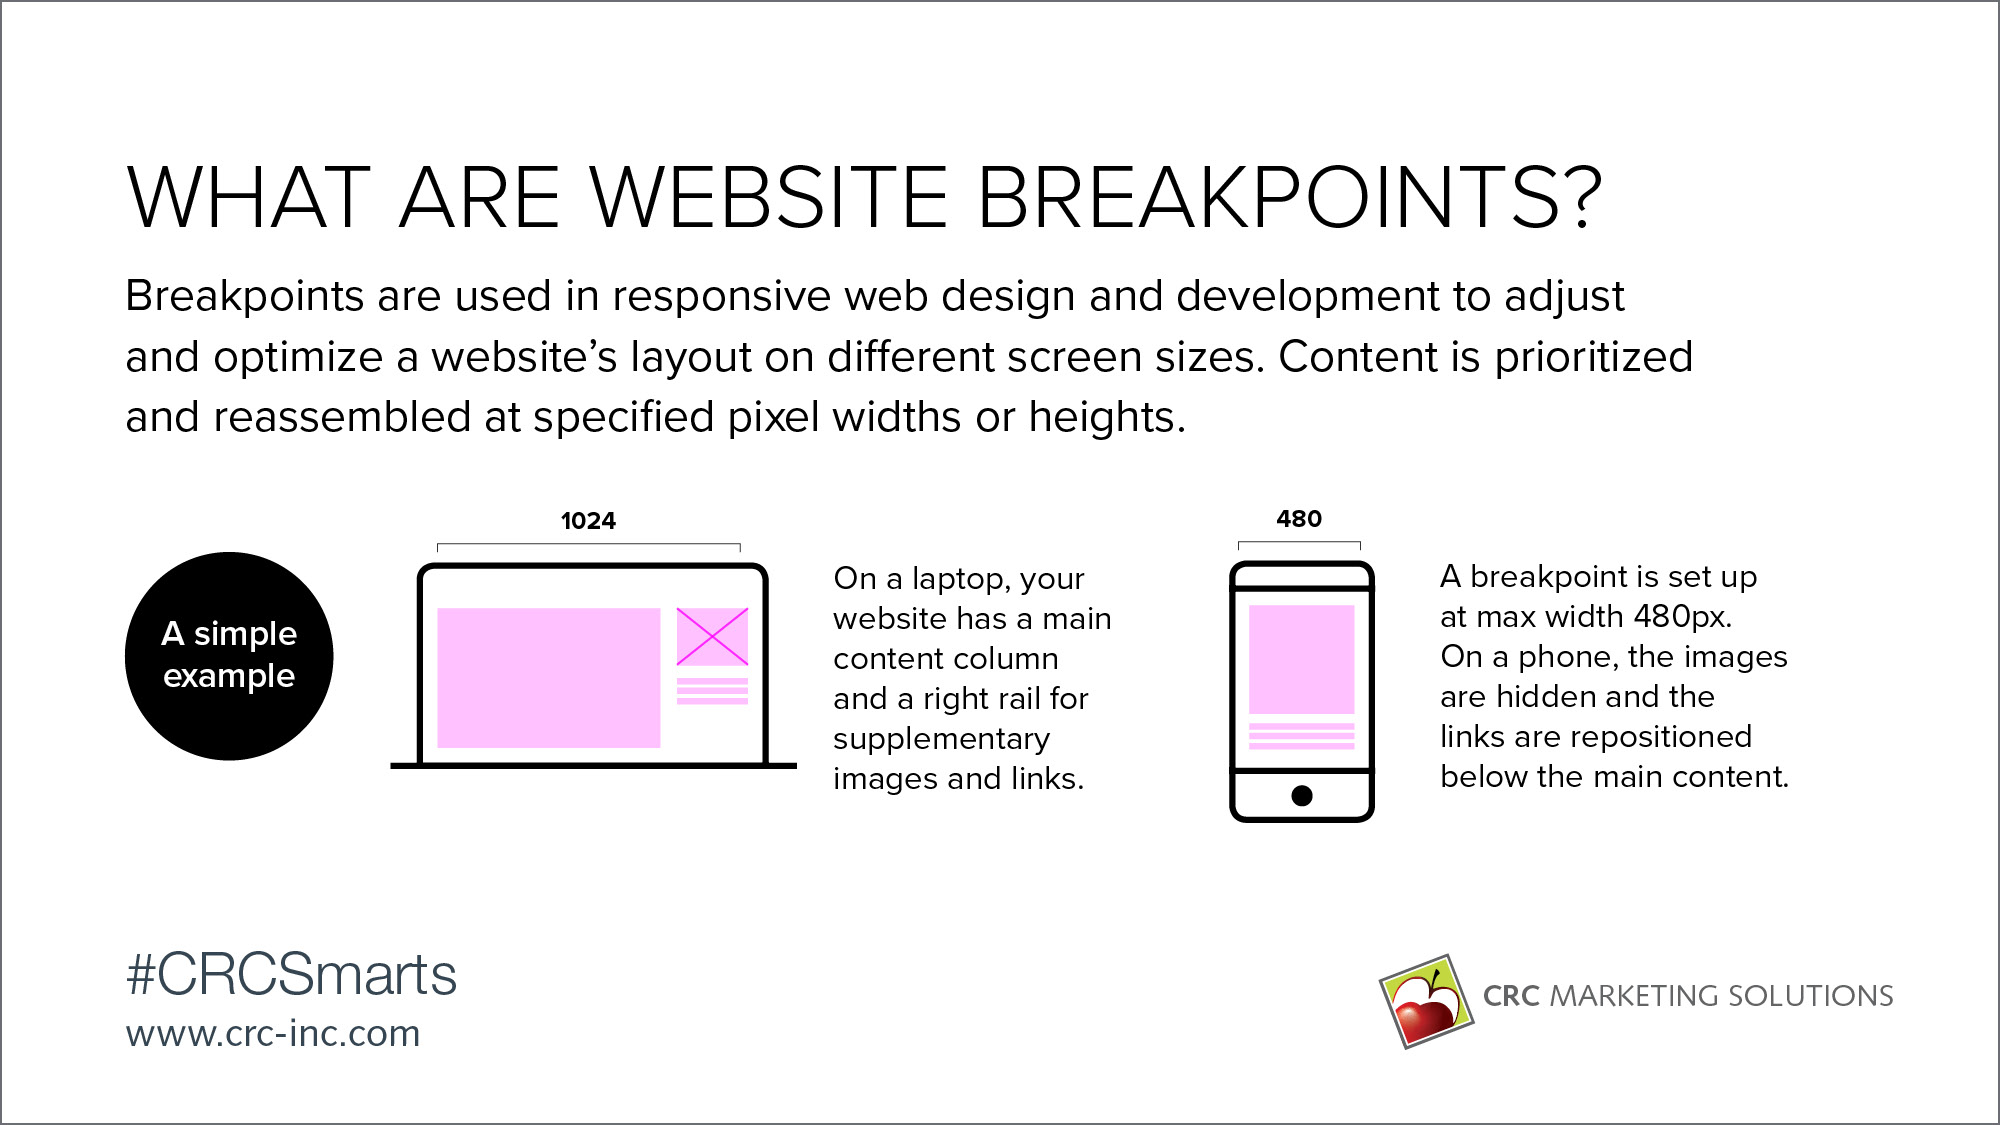 What are website breakpoints?